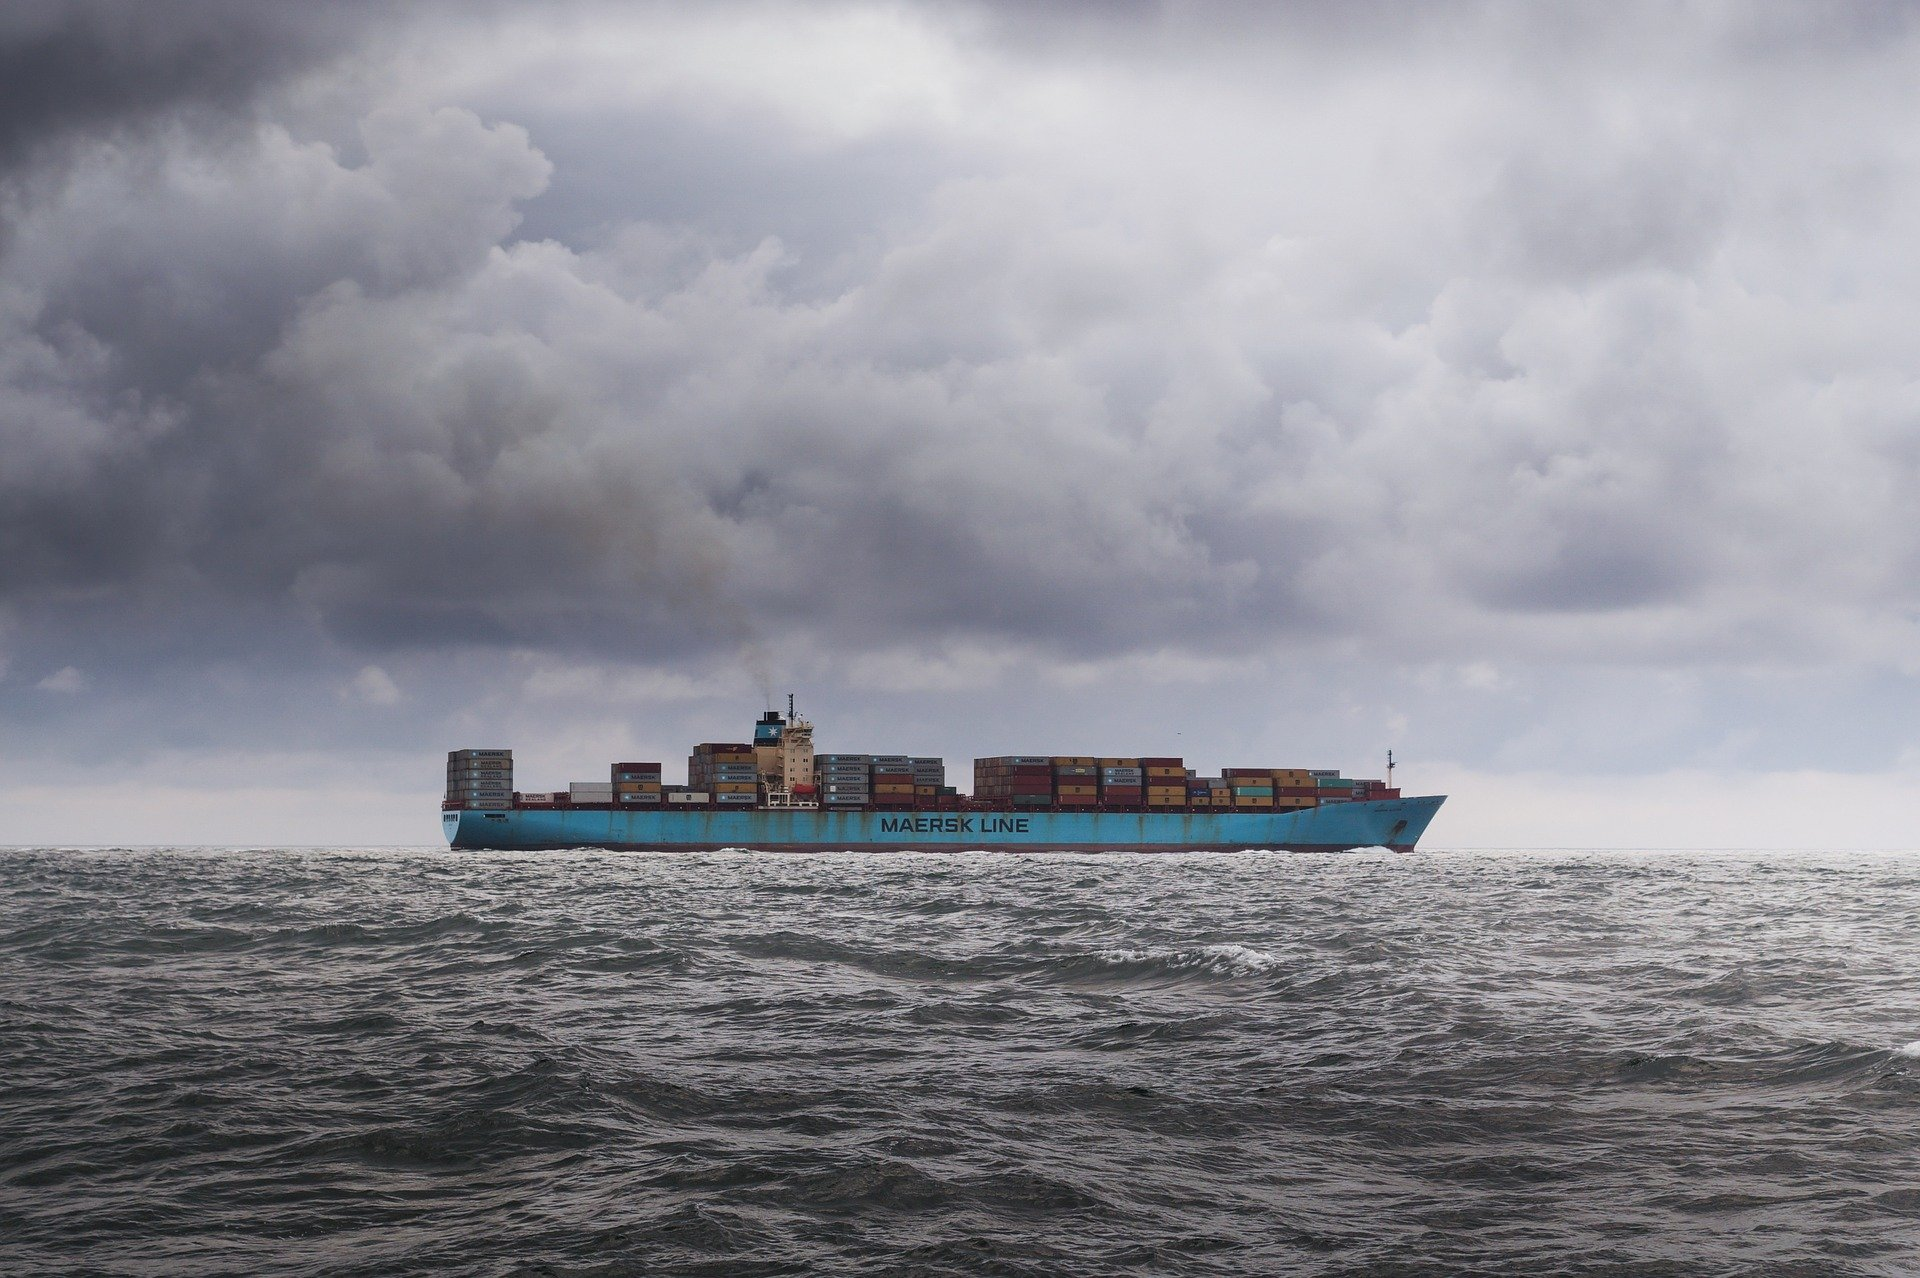 Some say the hardest things in life are ultimately the most rewarding challenges to overcome. Just don't tell that to anyone that works in or depends on the container shipping industry right now. In this edition of the Friday Five we look at the pain of congestion, the sky high costs, and the rising call to rethink global supply chains.